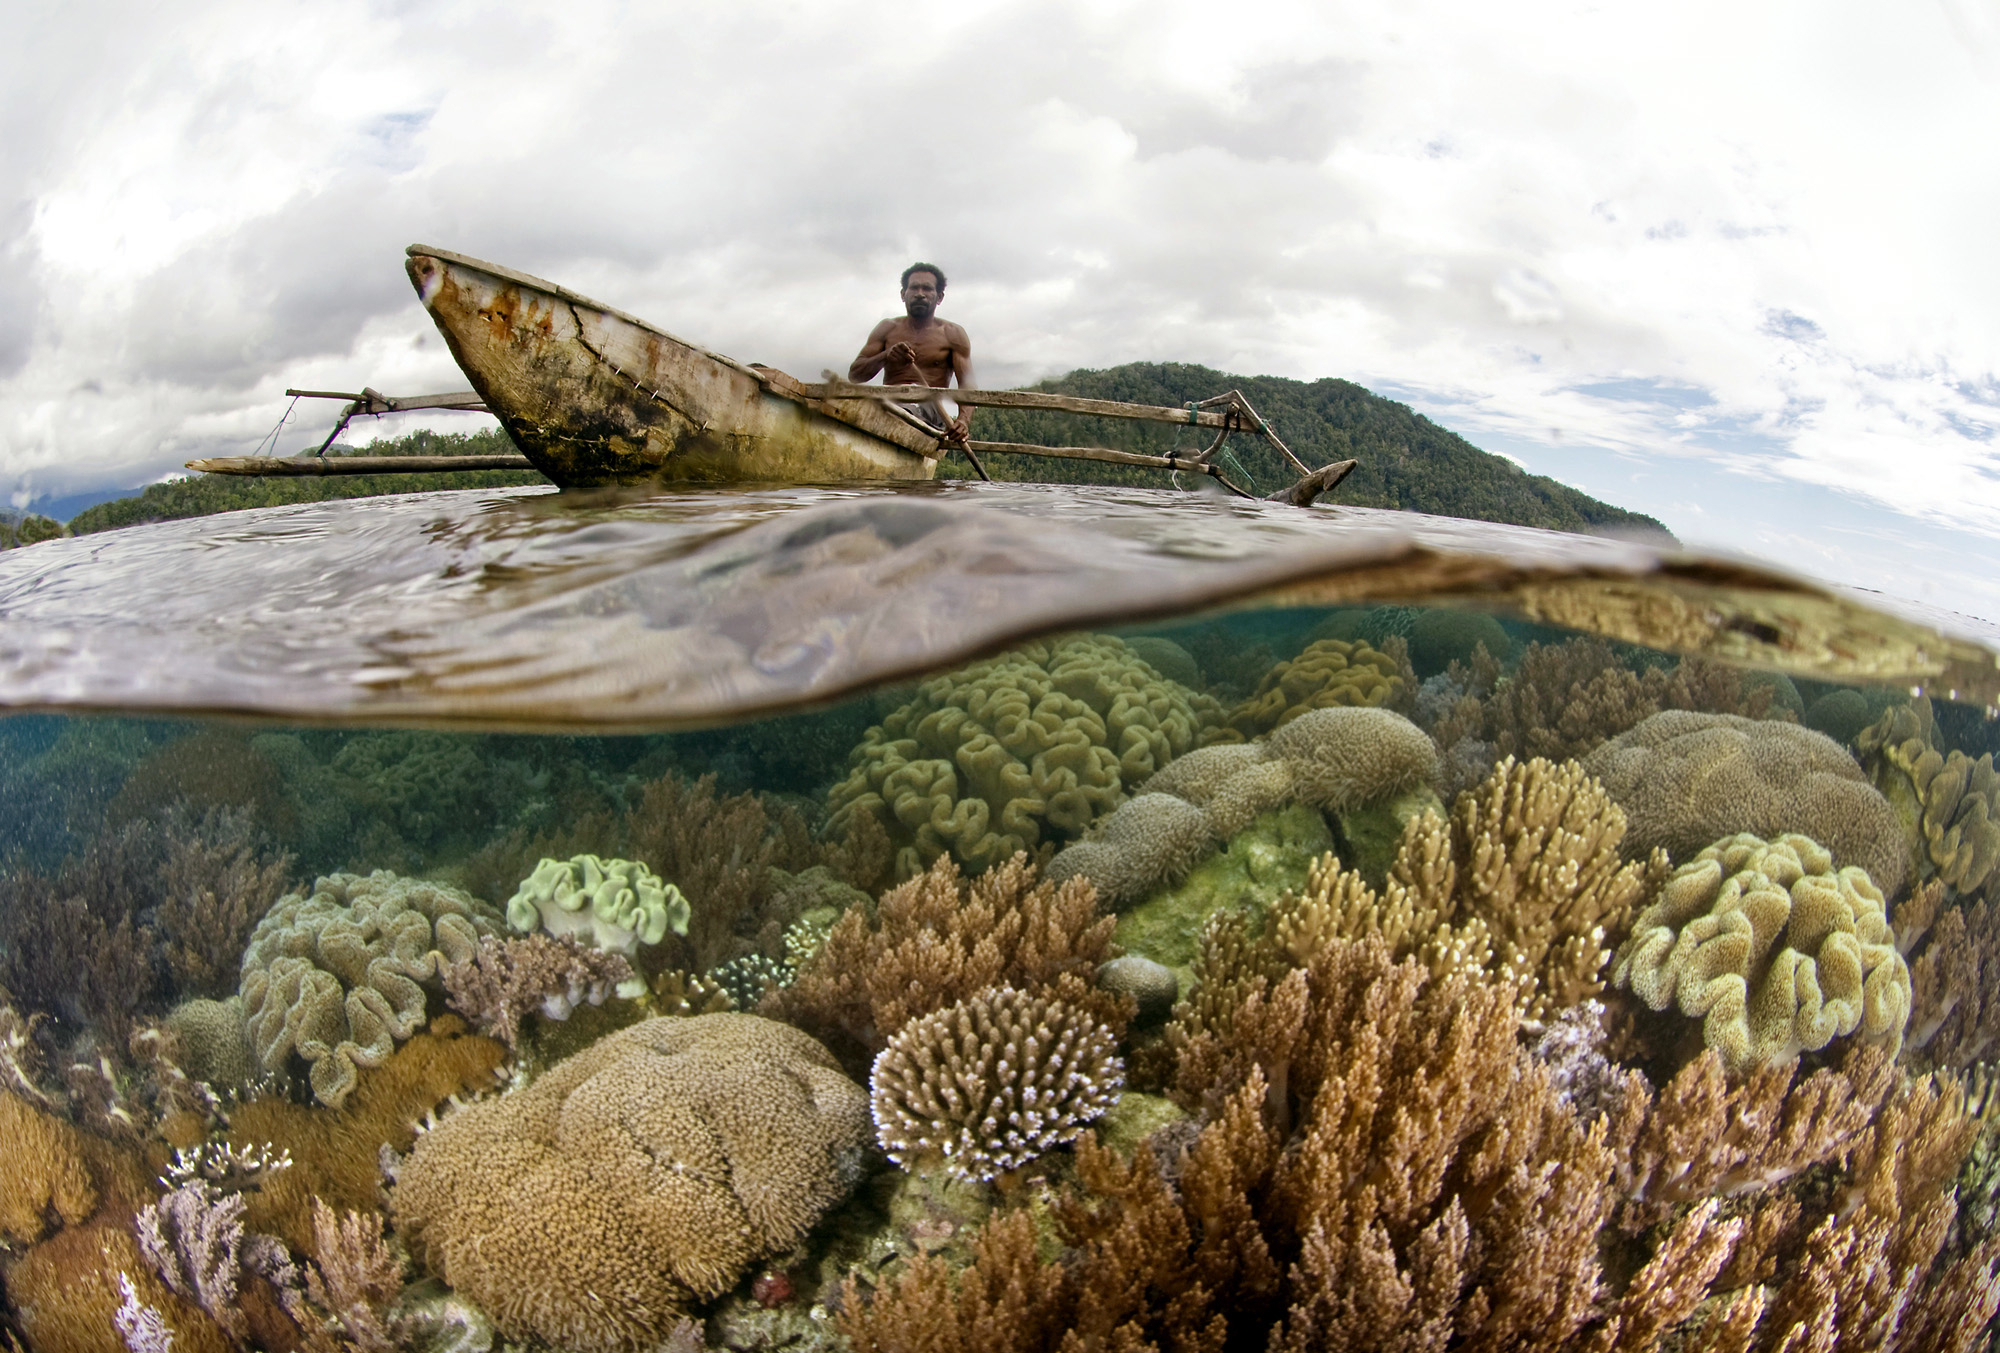 View of a man in a boat and underwater coral reef in Bird's Head, Raja Ampat, Indonesia